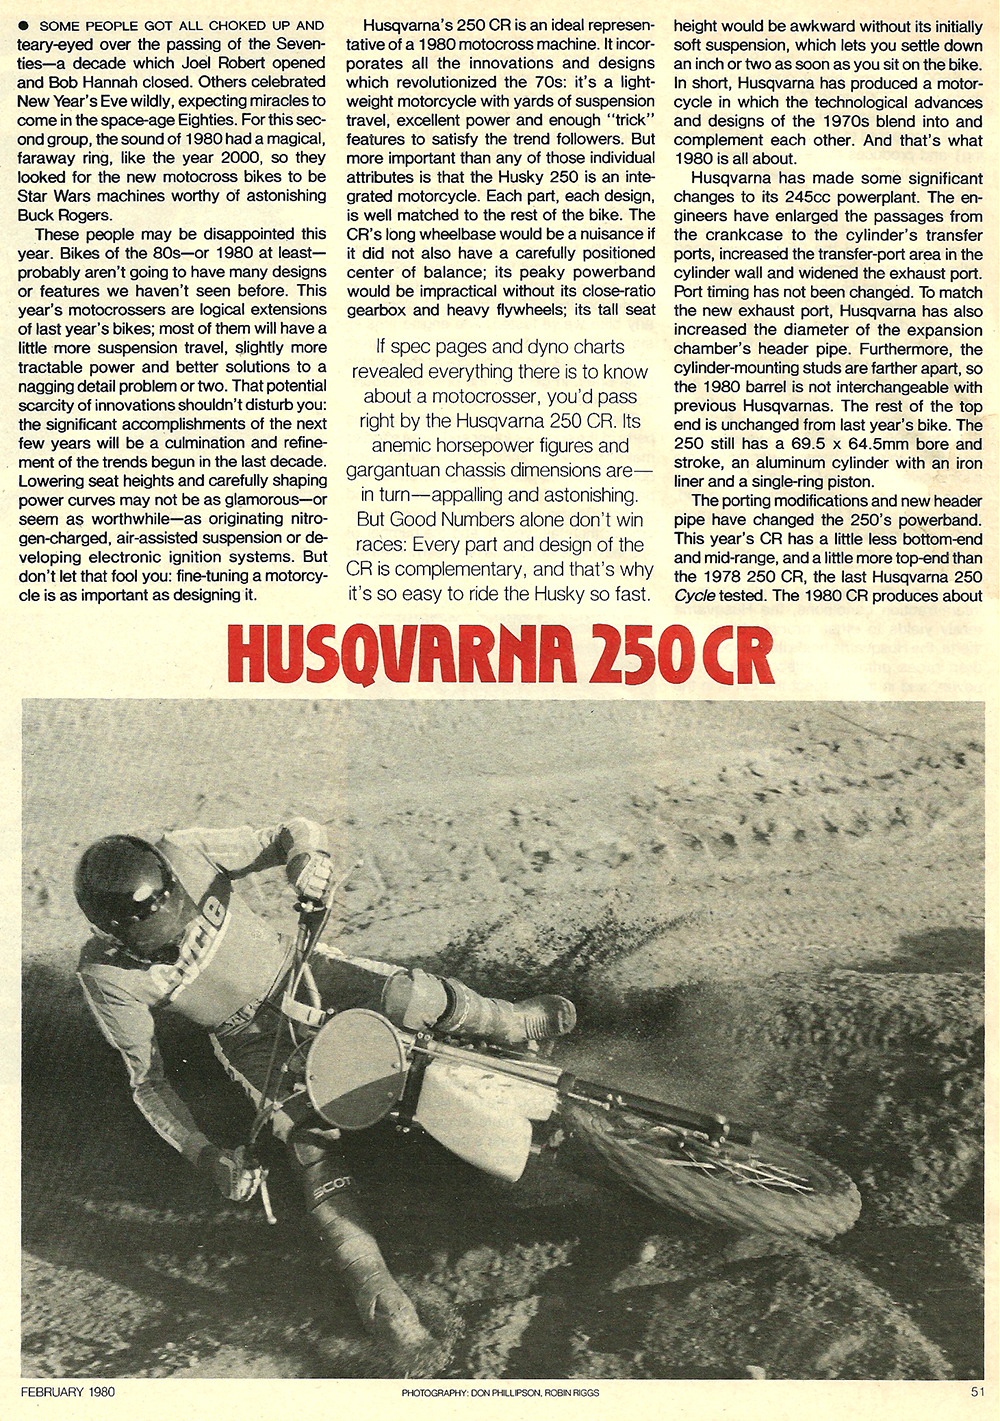 1980 Husqvarna 250 CR road test 2.jpg